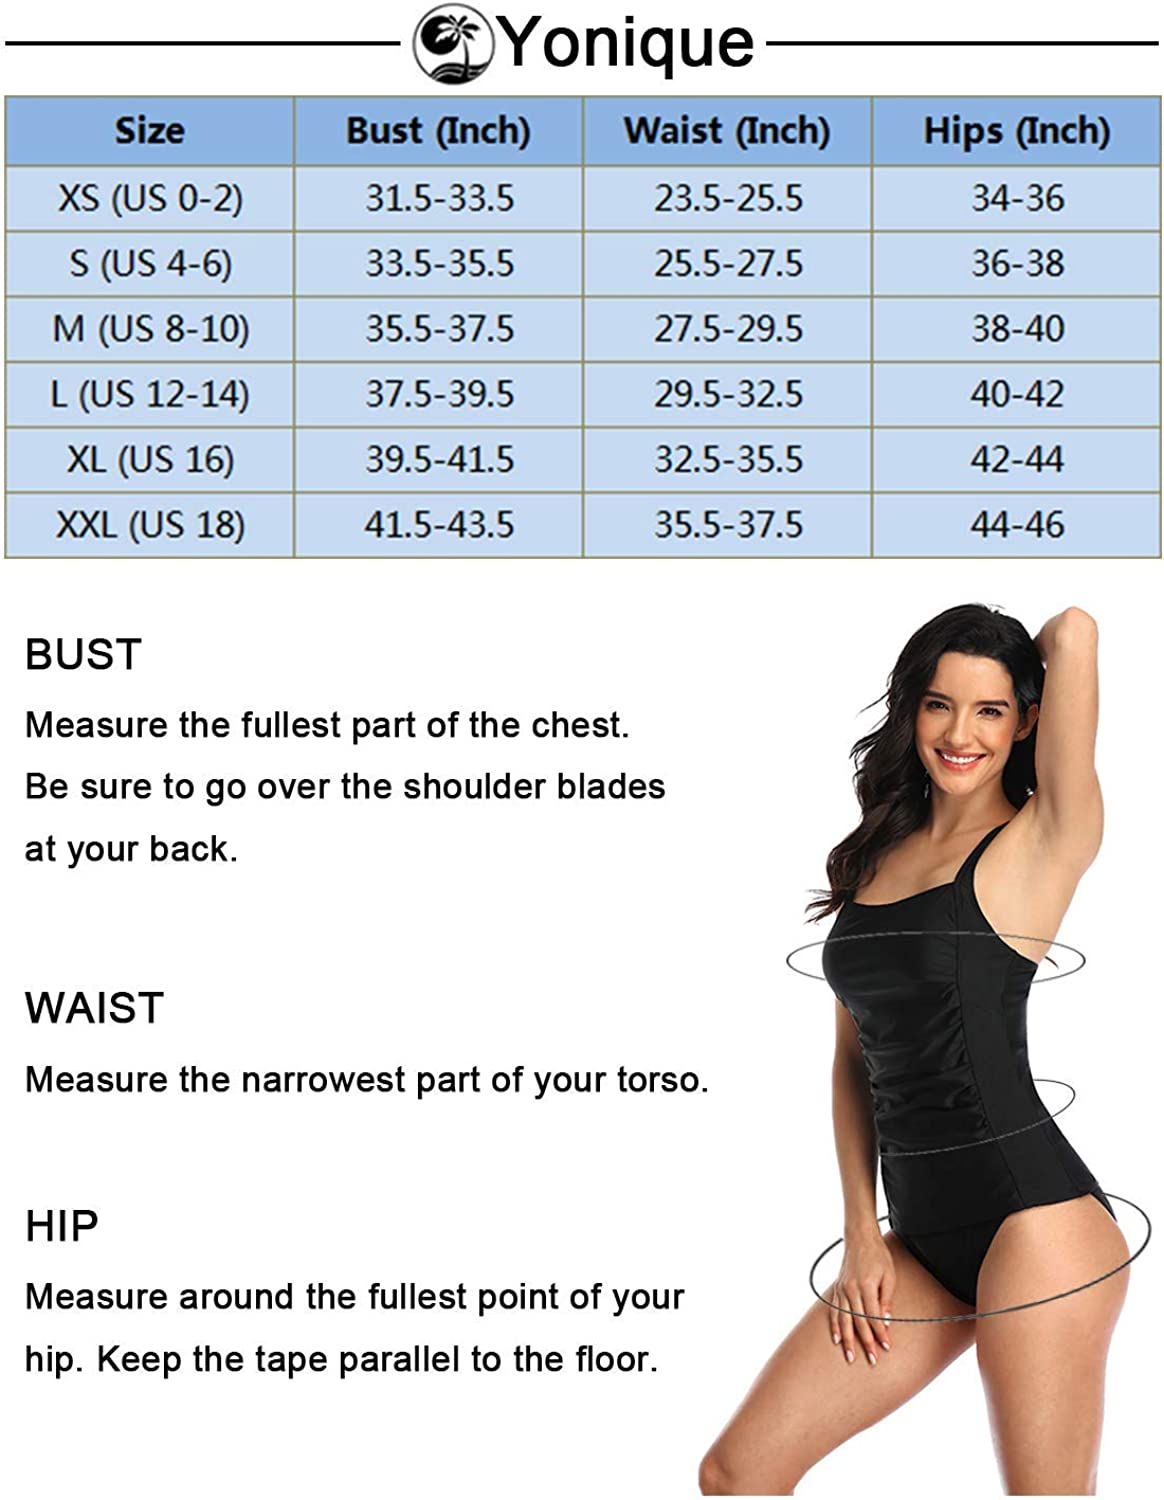 Yonique 2 Piece Tankini Swimsuits for Women with Boyshorts Bowknot Swim Tank Tops V Neck Bathing Suits Modest Swimwear